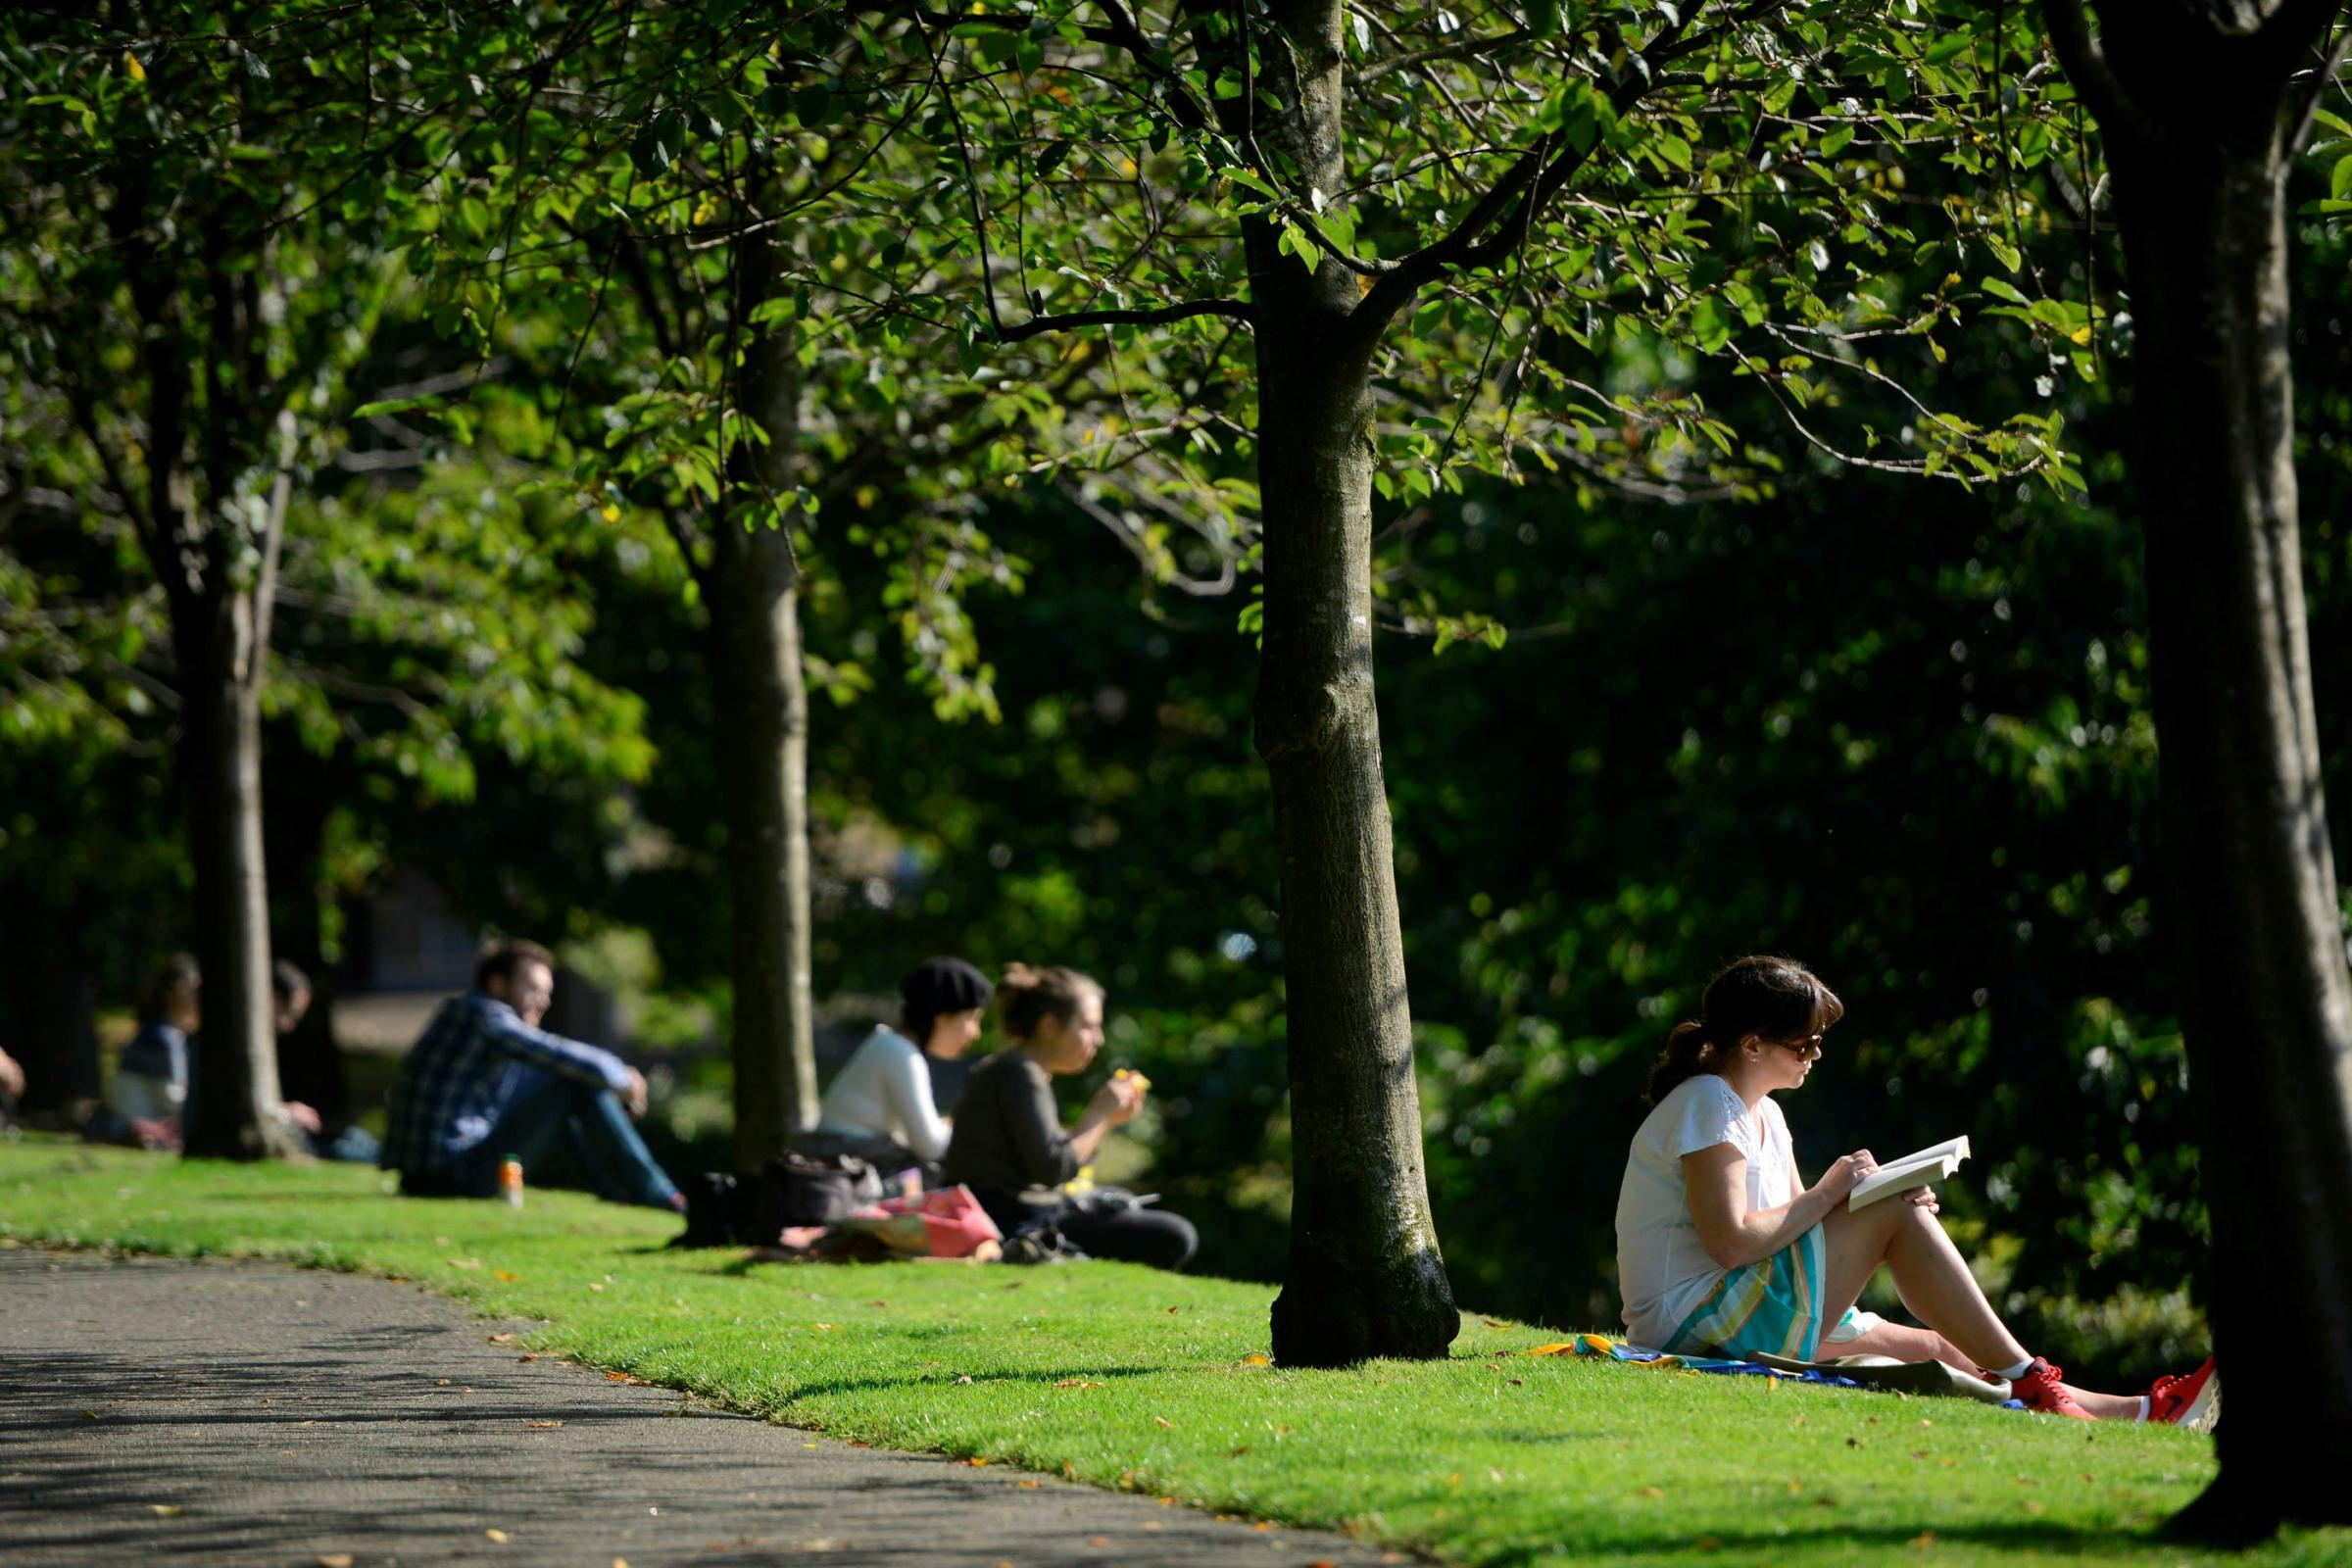 Taps aff! Glasgow set for scorching hot weekend with highs of 20C